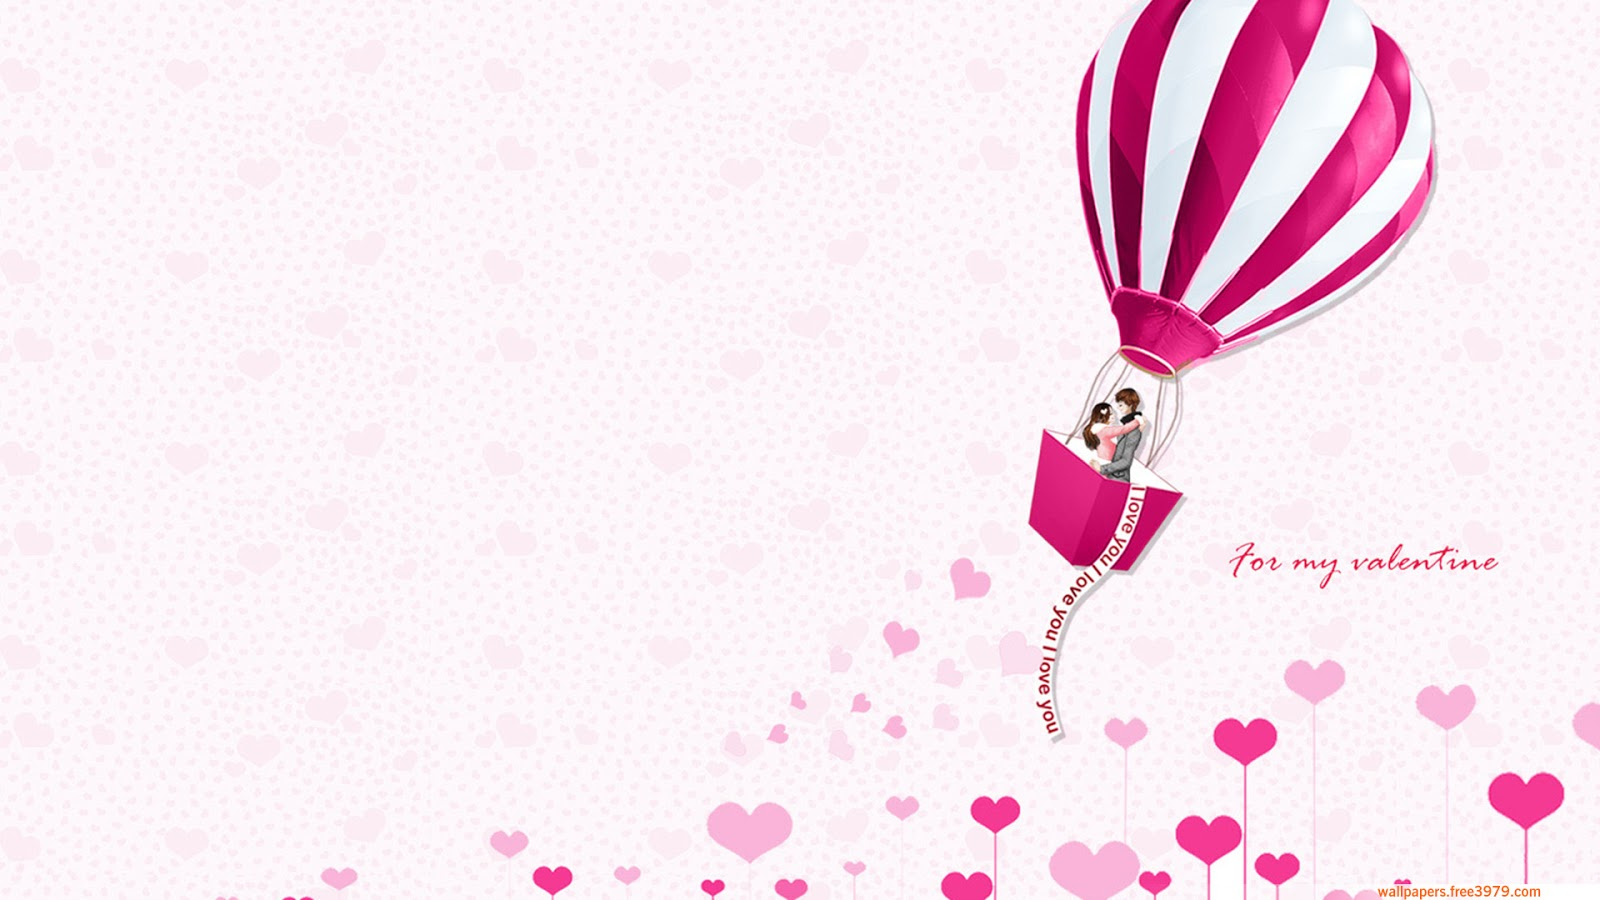 Cute Valentines Day Wallpaper Sweet Wallpapers for Valentine`s Day ...